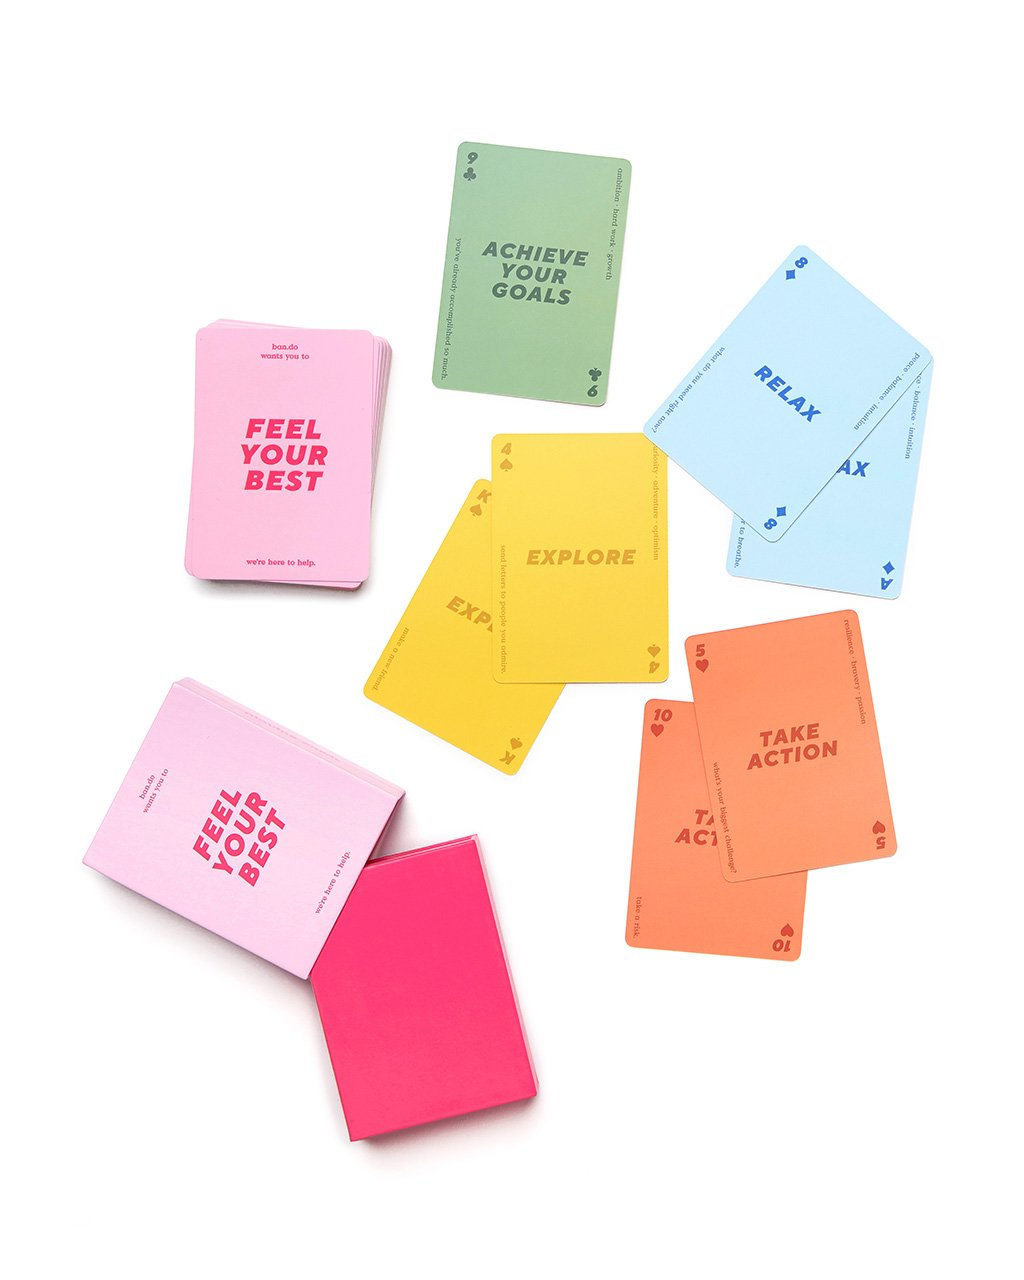 Color themed cards used for reflection, meditation, and more.